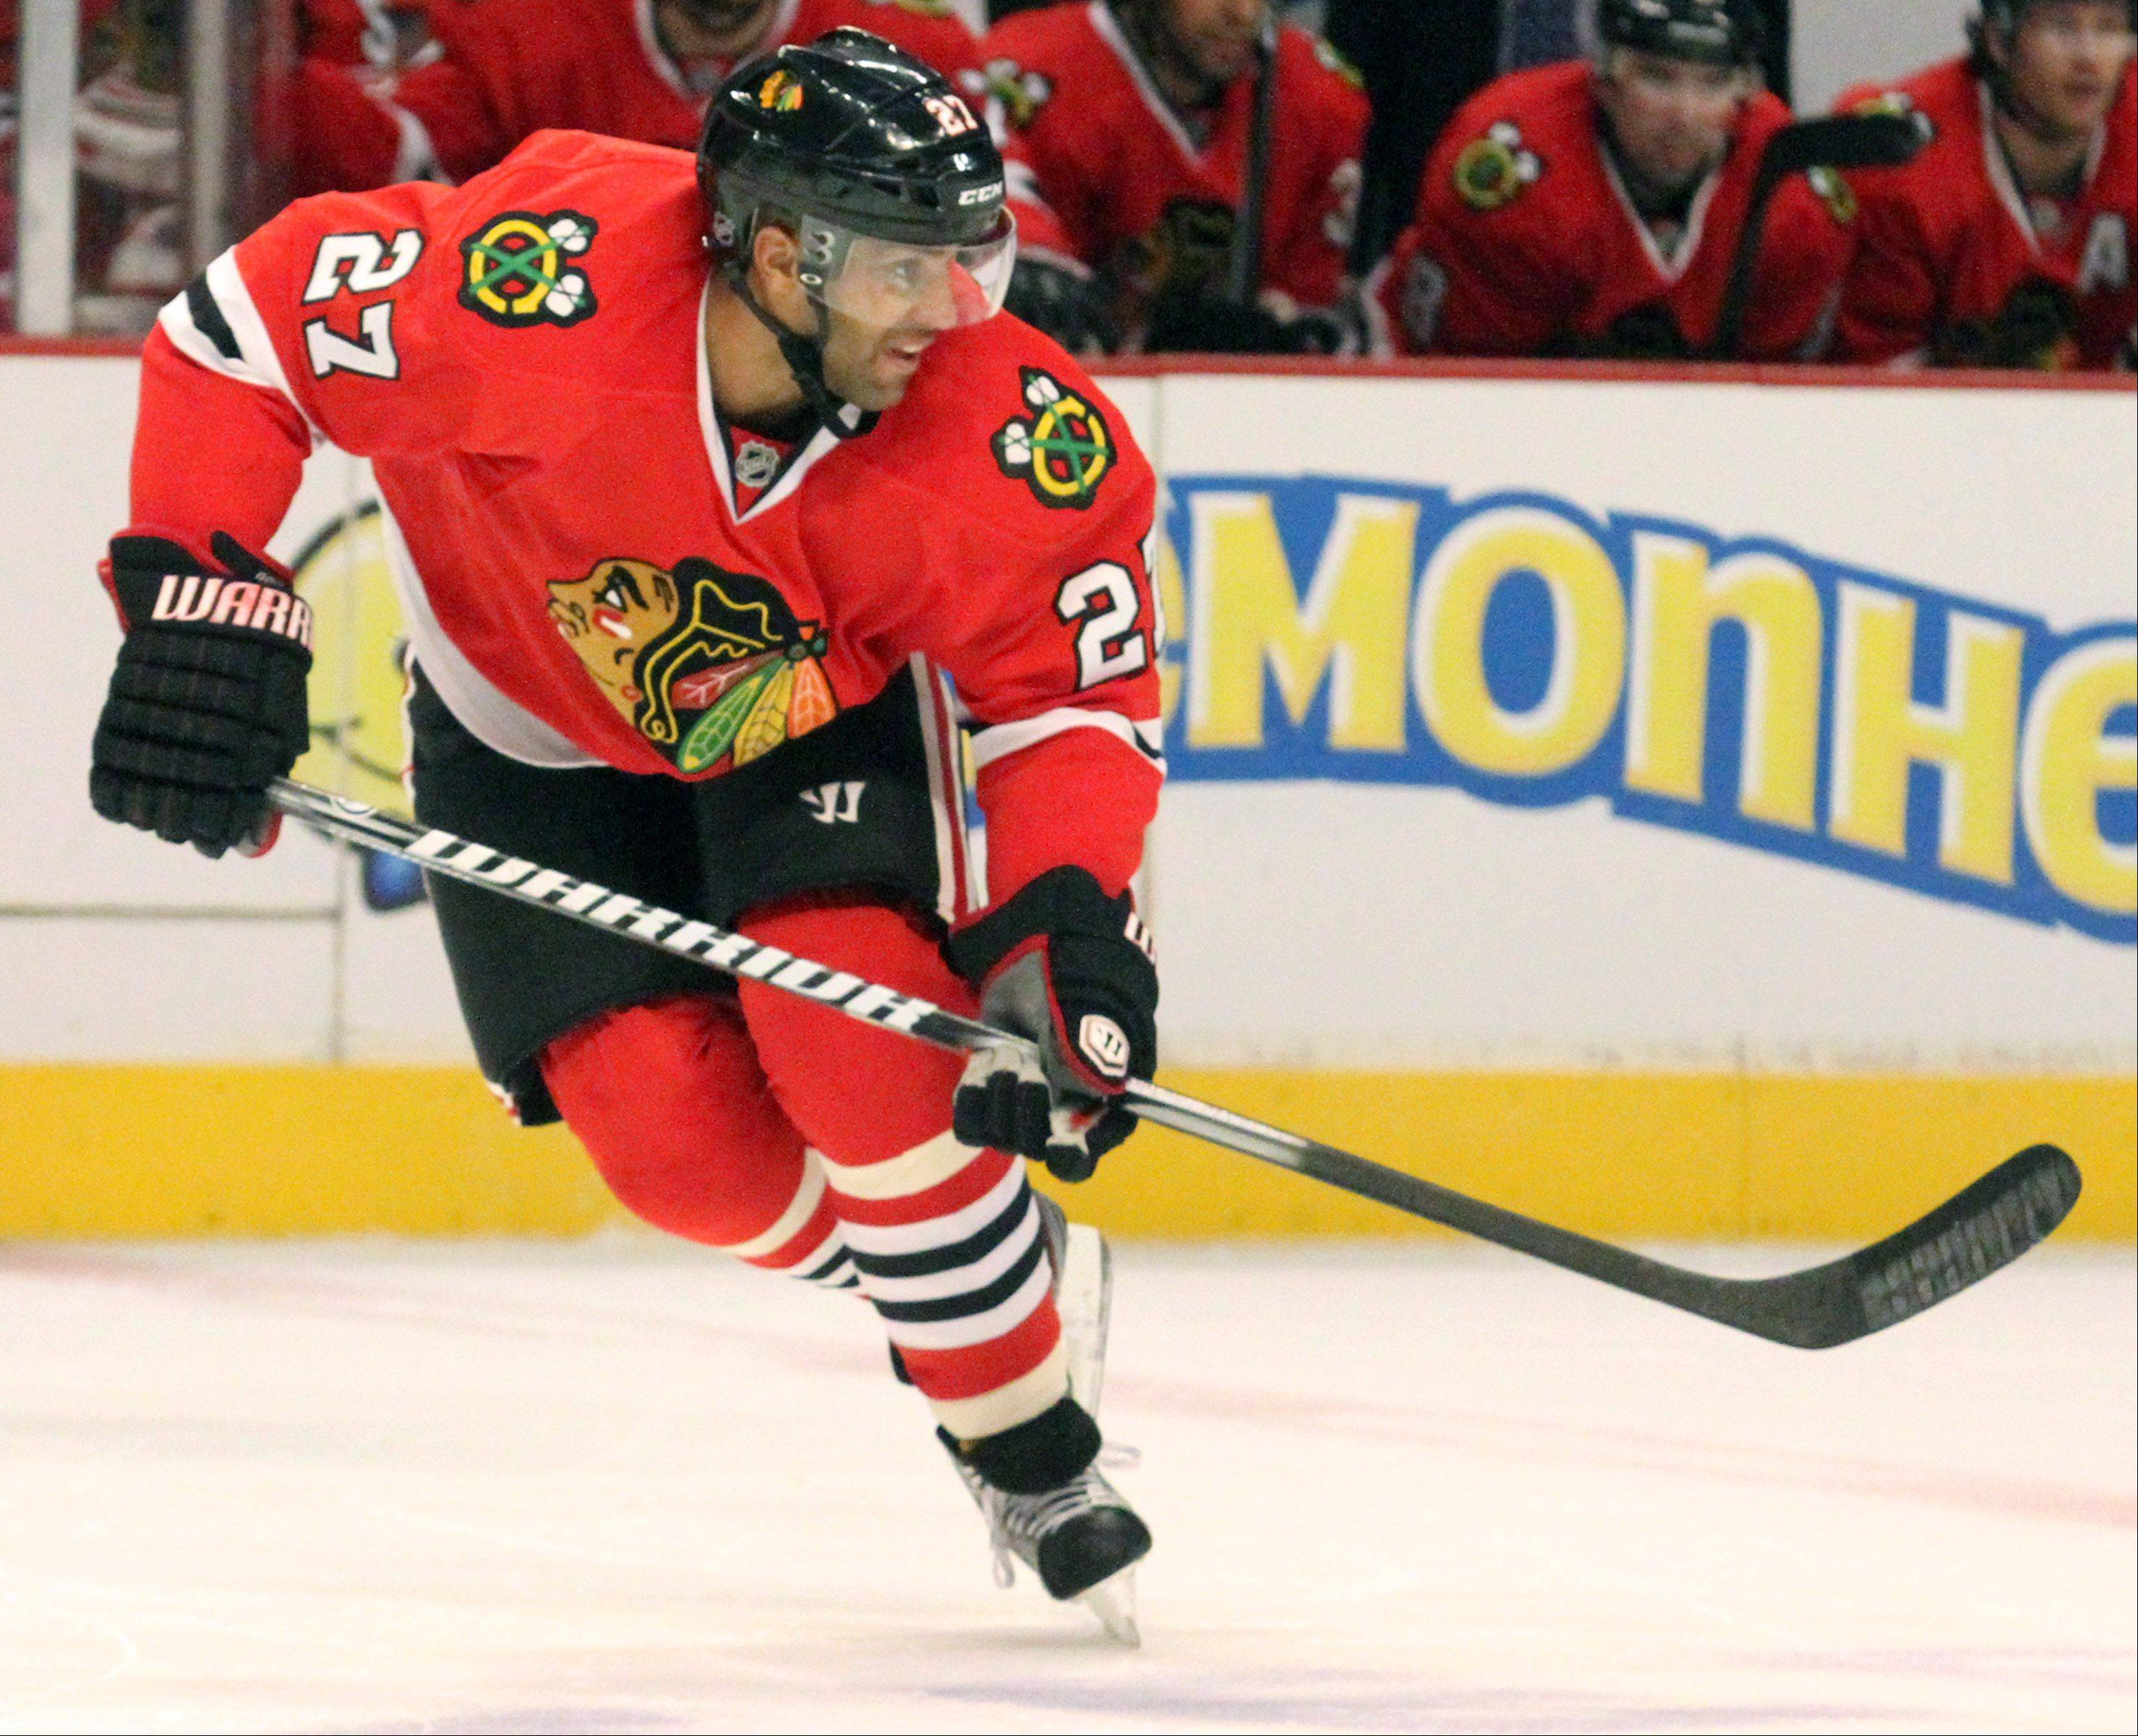 Blackhawks defenseman Johnny Oduya in 2-1 win over San Jose Sharks at the United Center on Friday, February 22, 2013.28